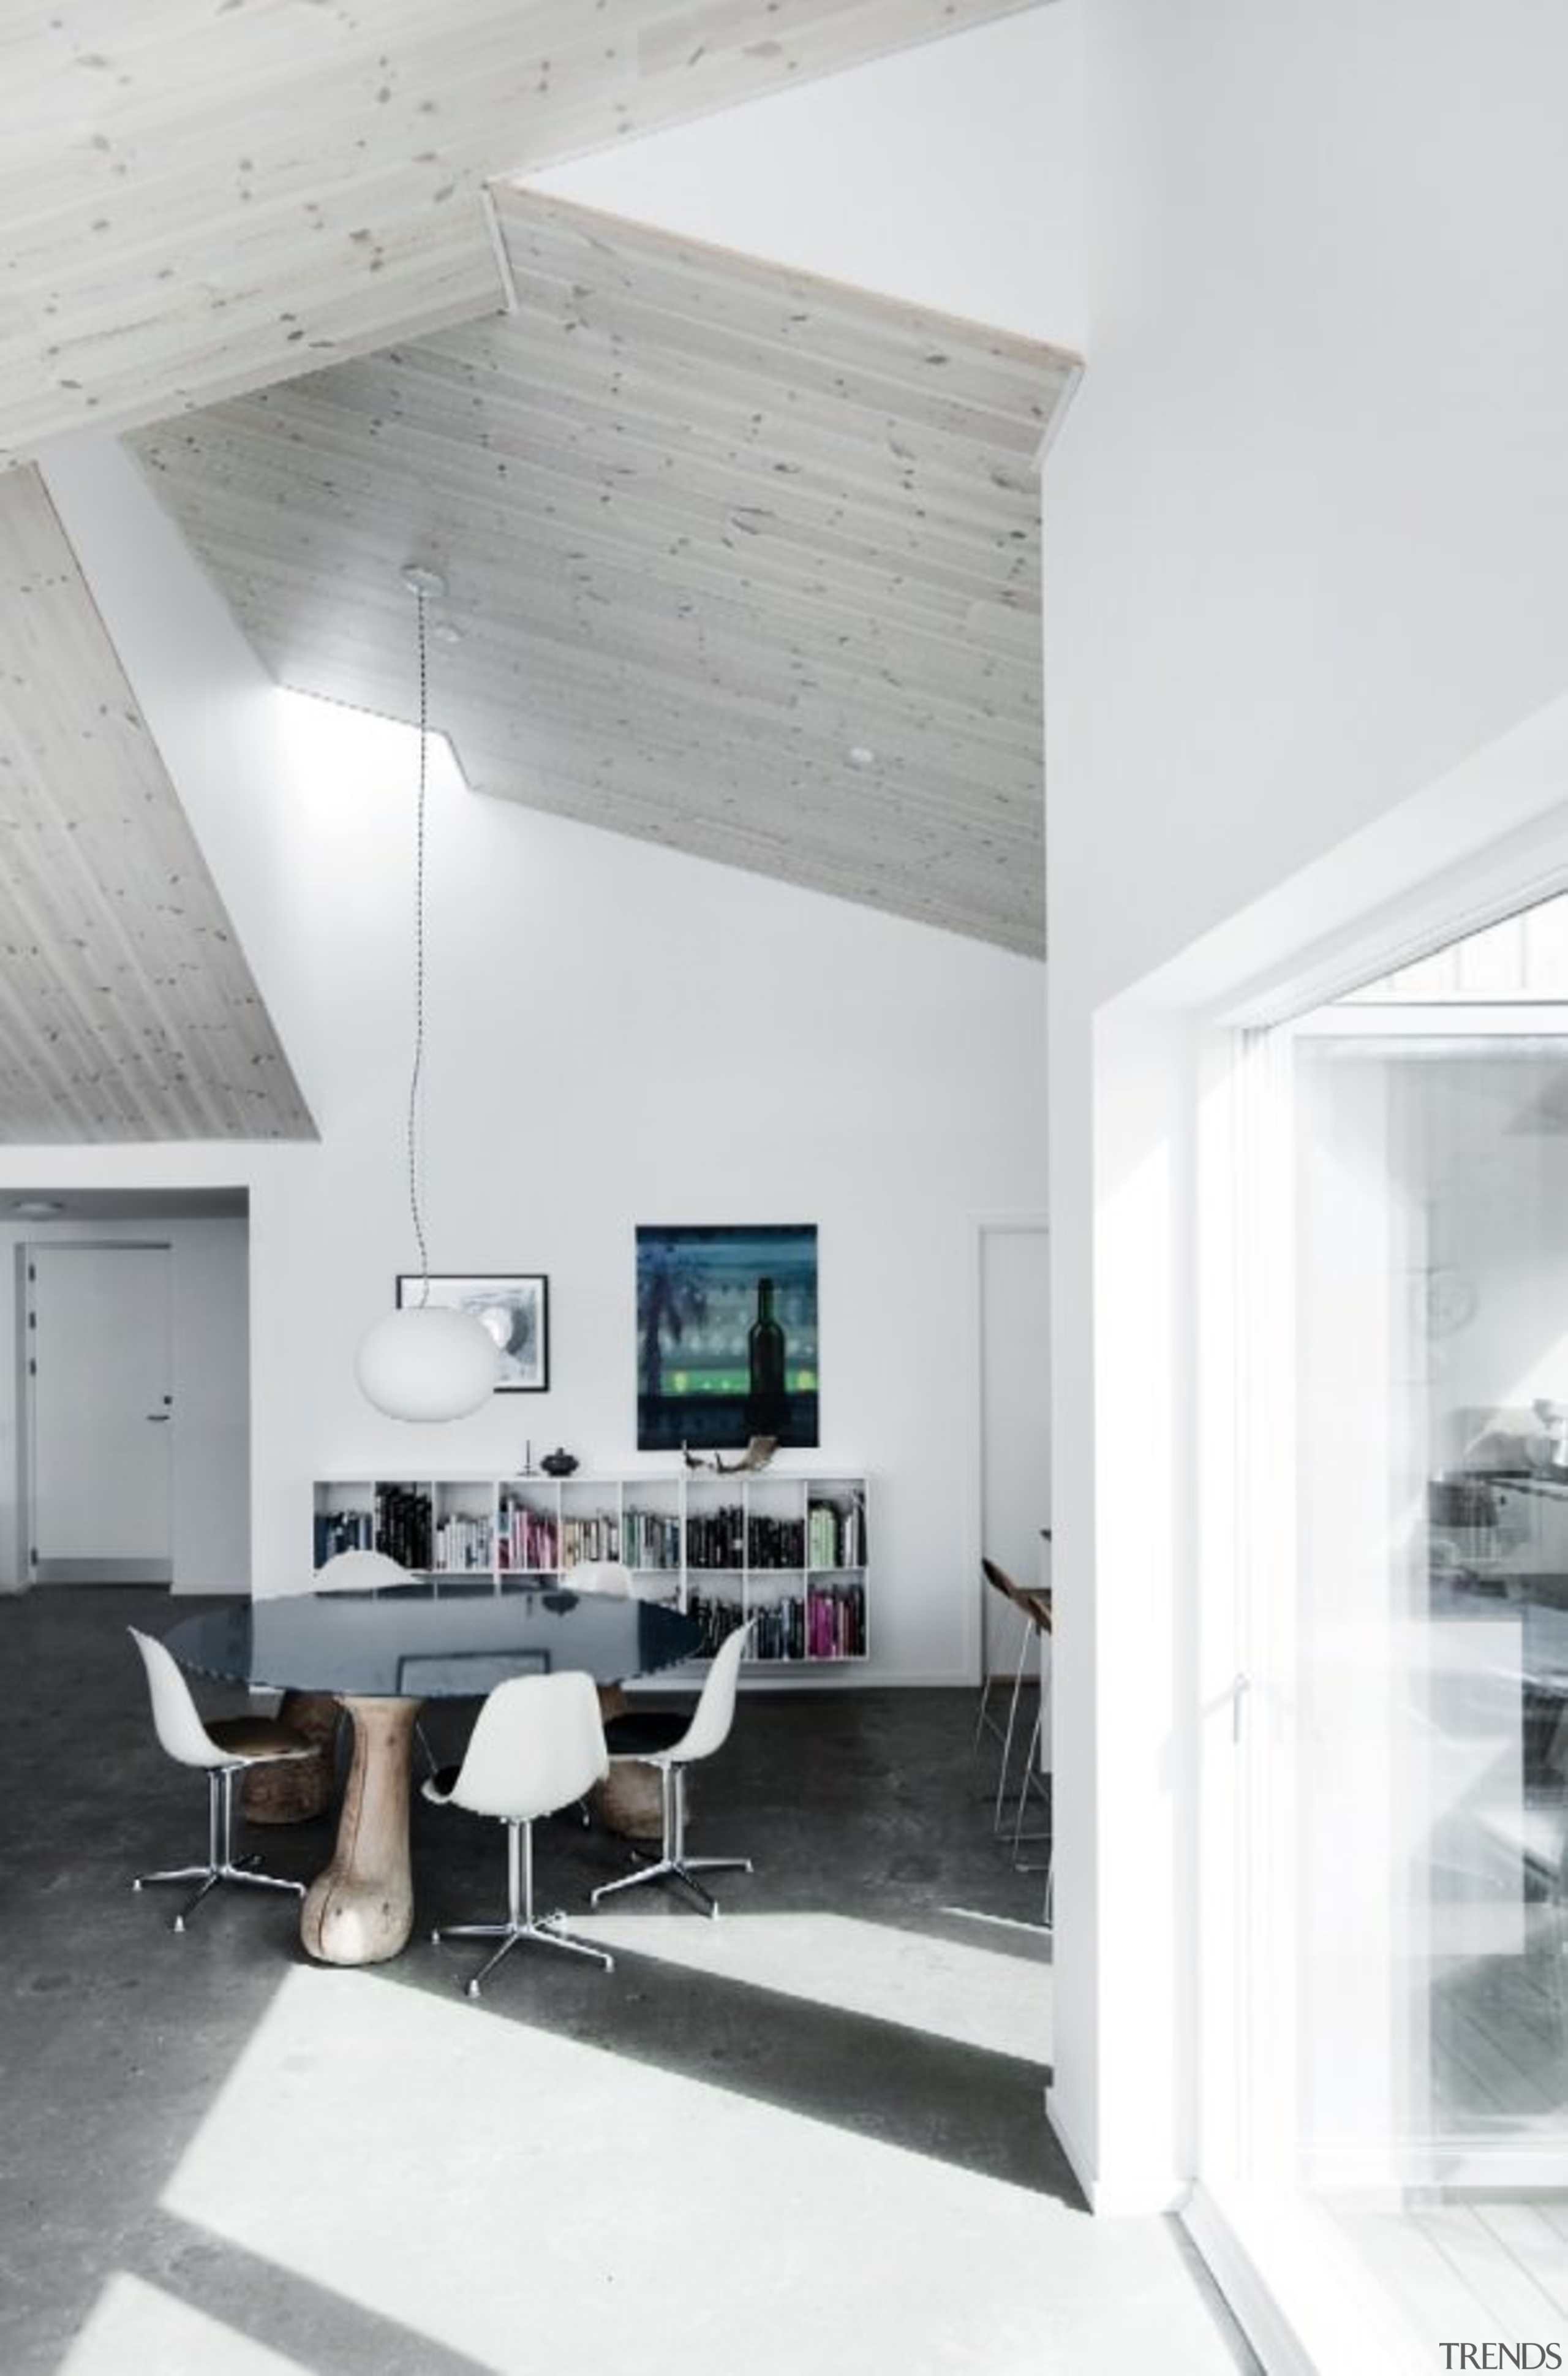 Architect: Sigured LarsenPhotography by Tia Borgsmidt architecture, ceiling, daylighting, floor, house, interior design, living room, product design, table, white, gray